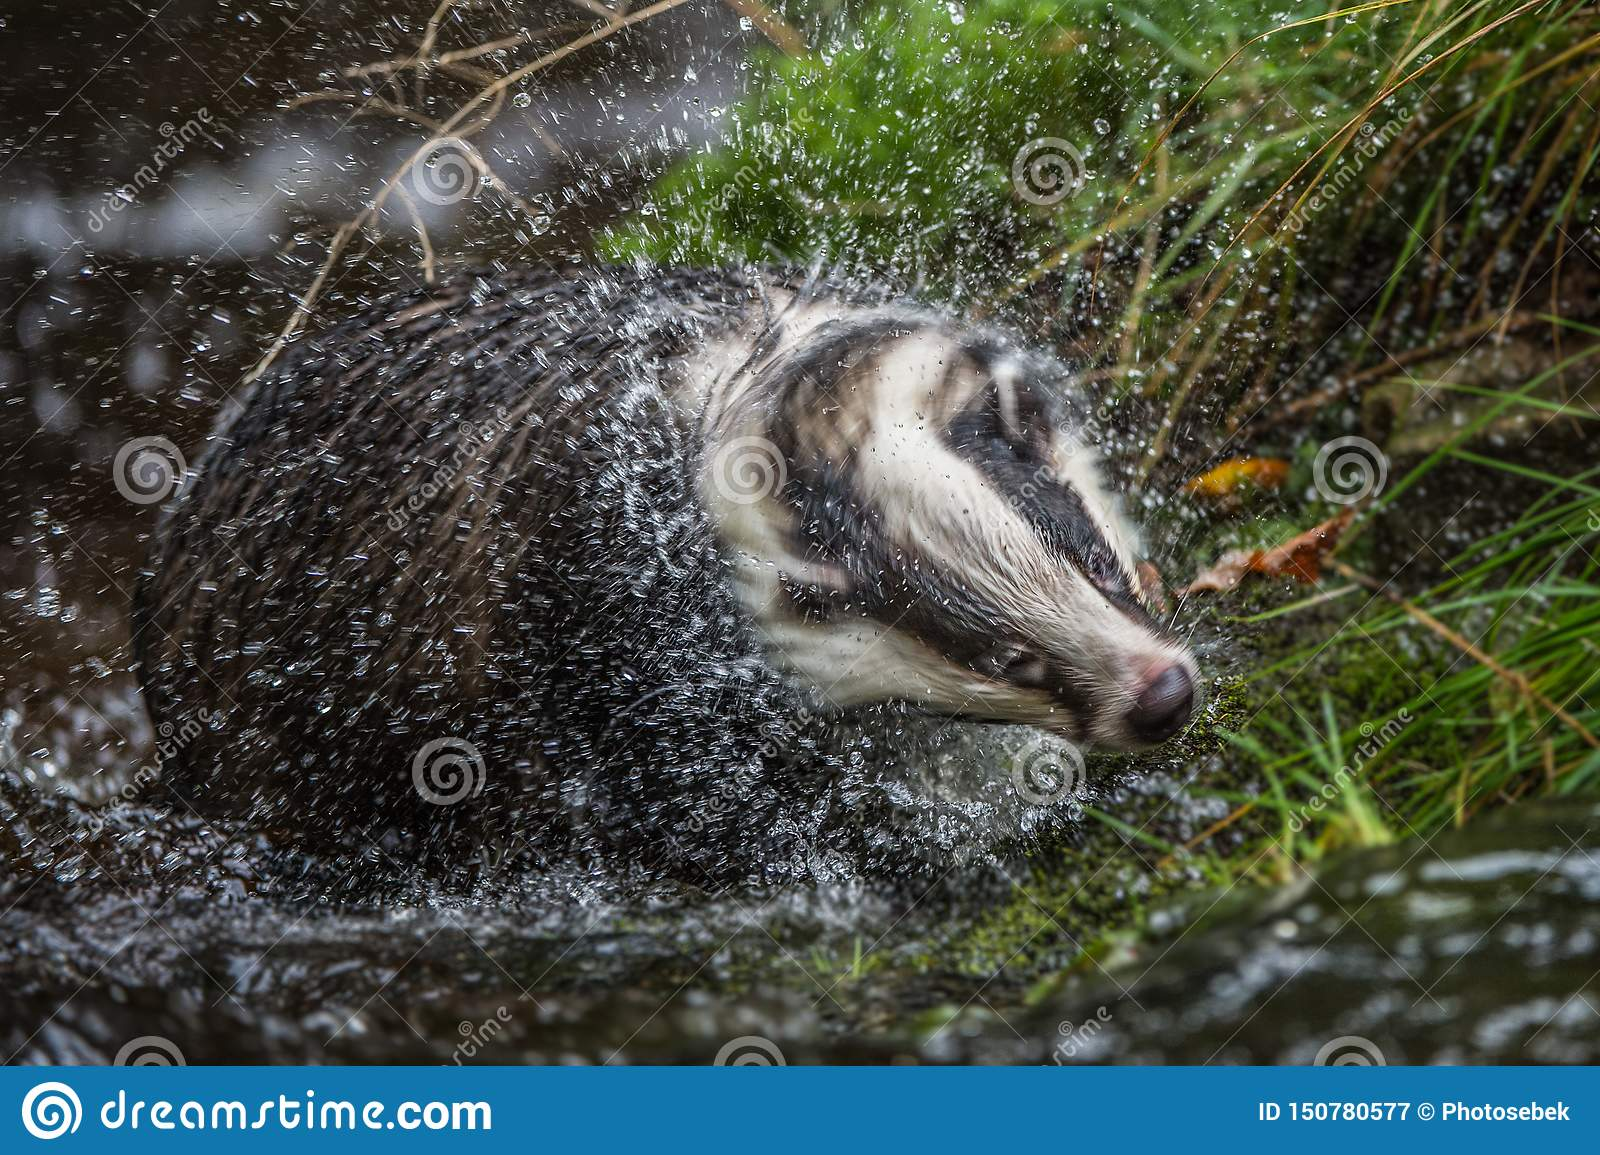 Badger in forest, animal in nature habitat, Germany, Europe. Wild Badger, Meles meles, animal in the wood. Mammal in environment,